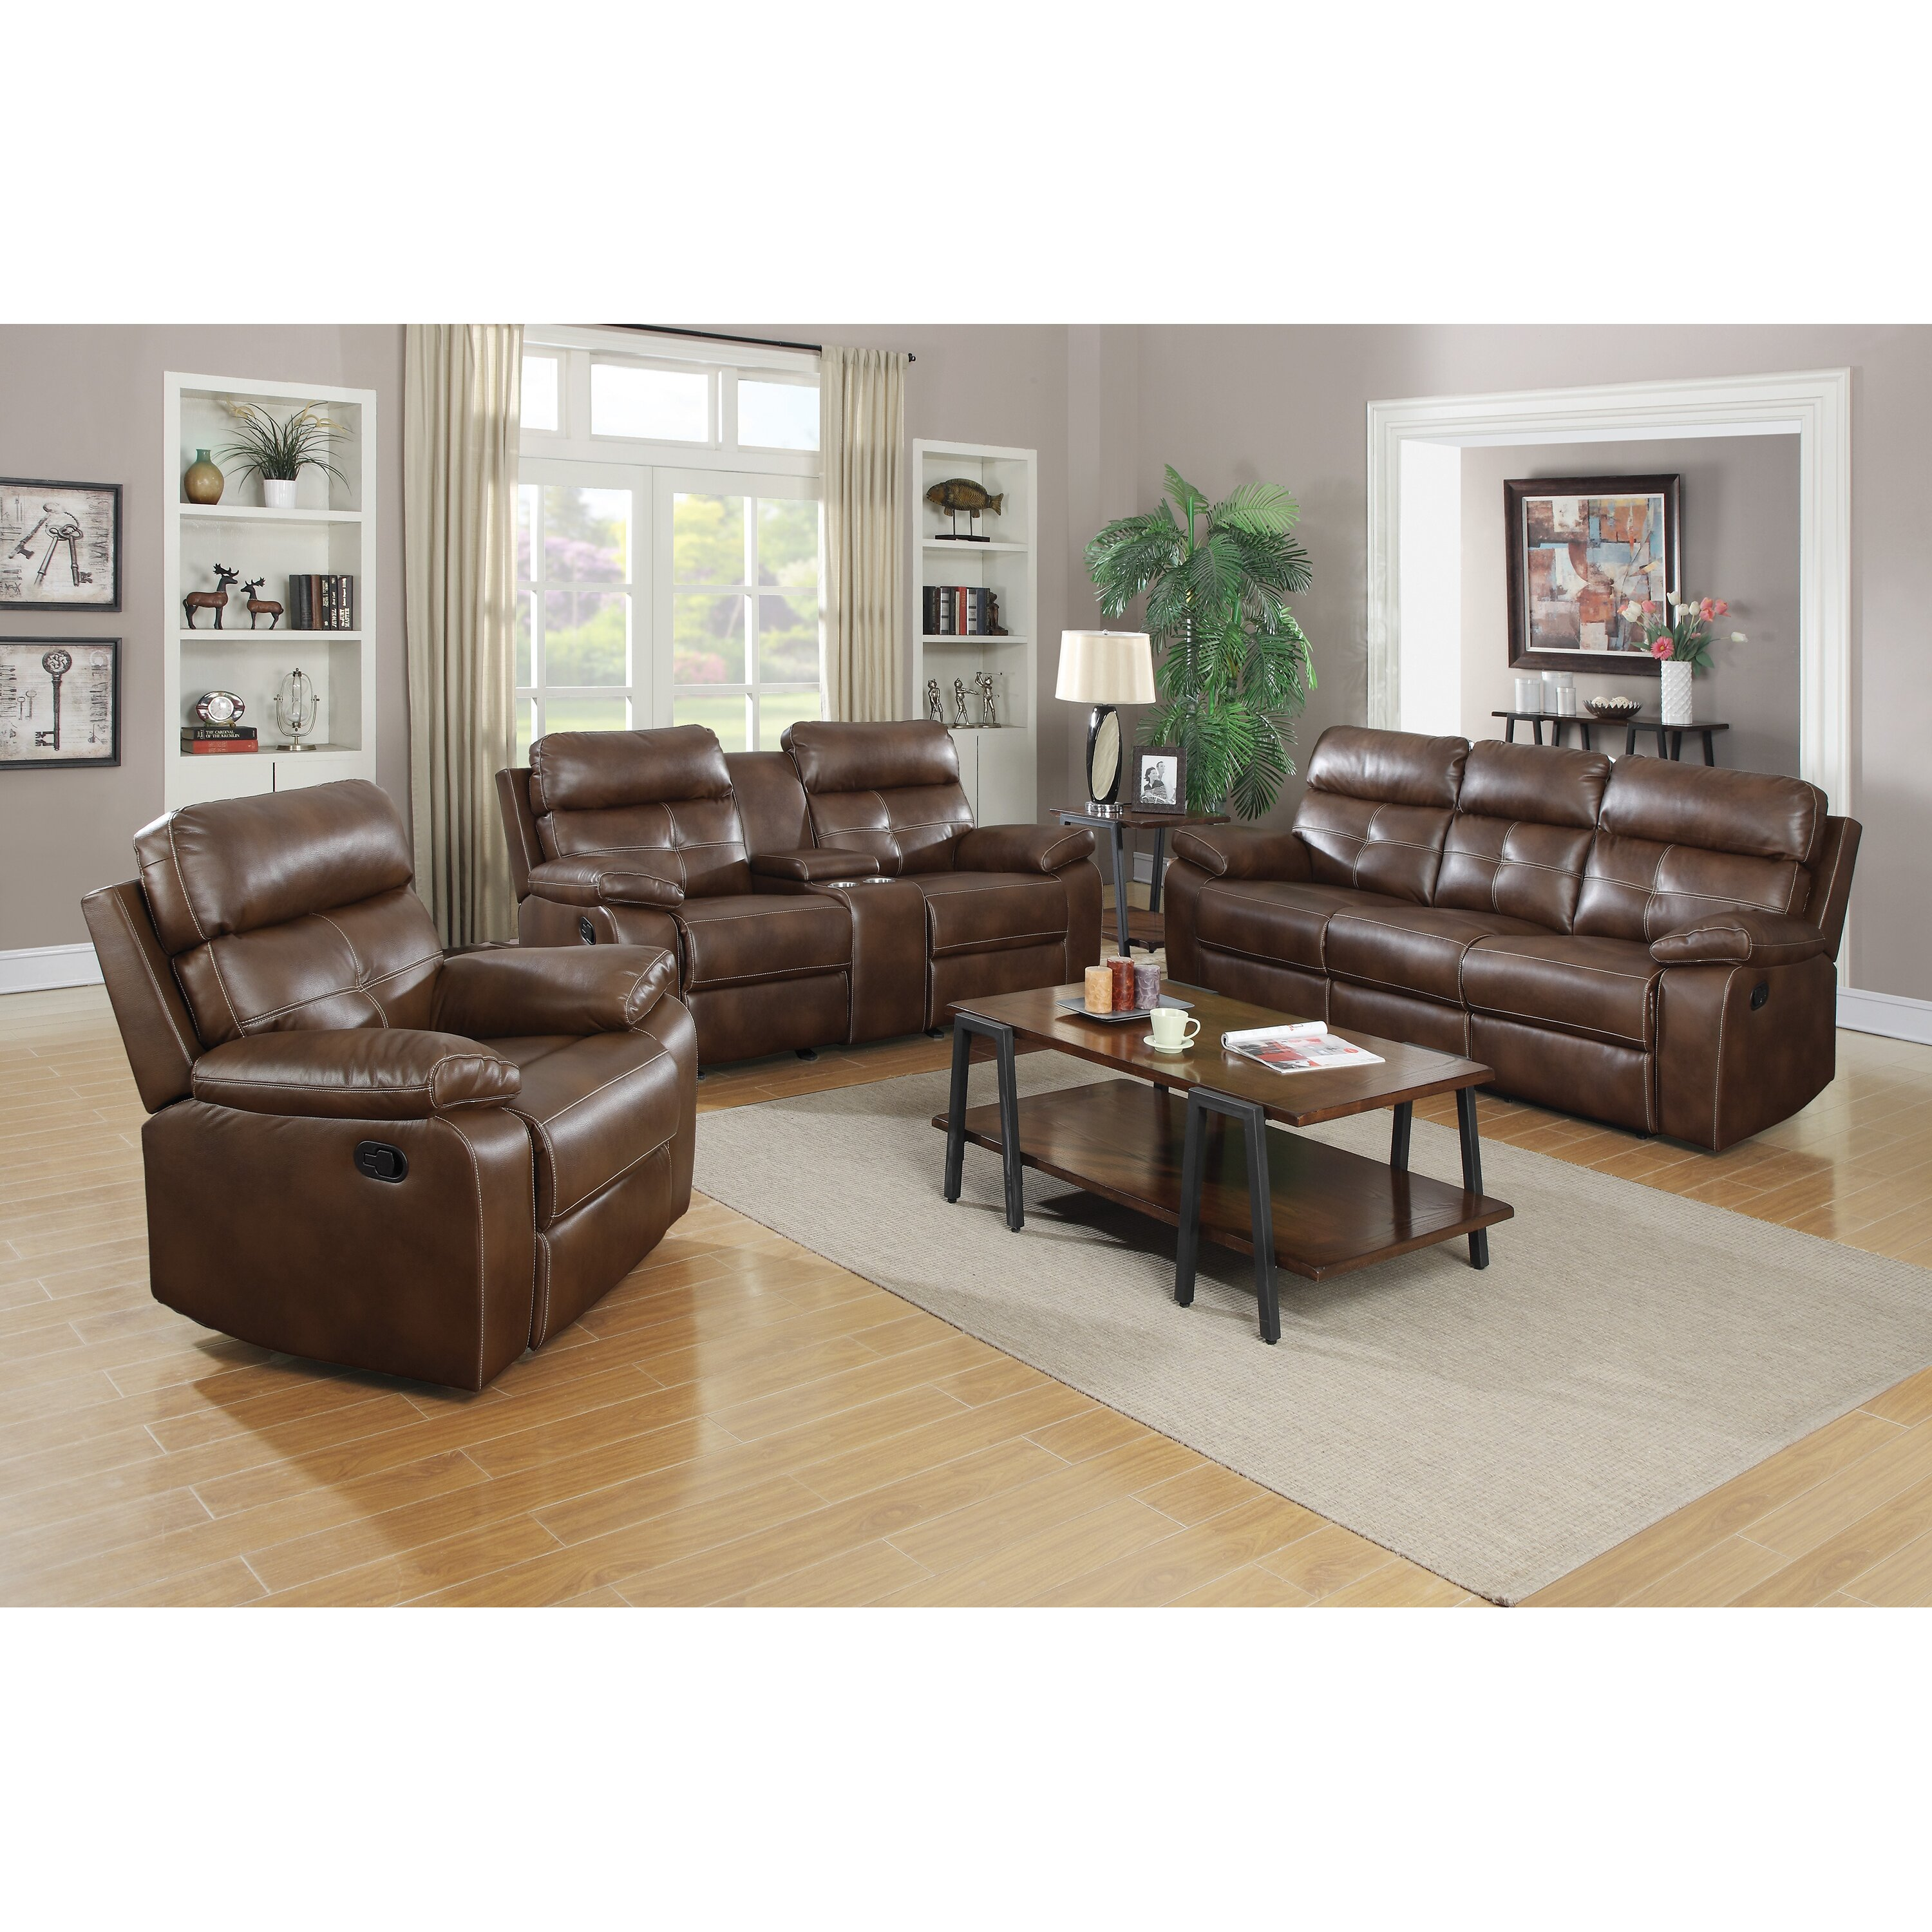 Wildon Home Damiano Motion Reclining Sofa Wayfair